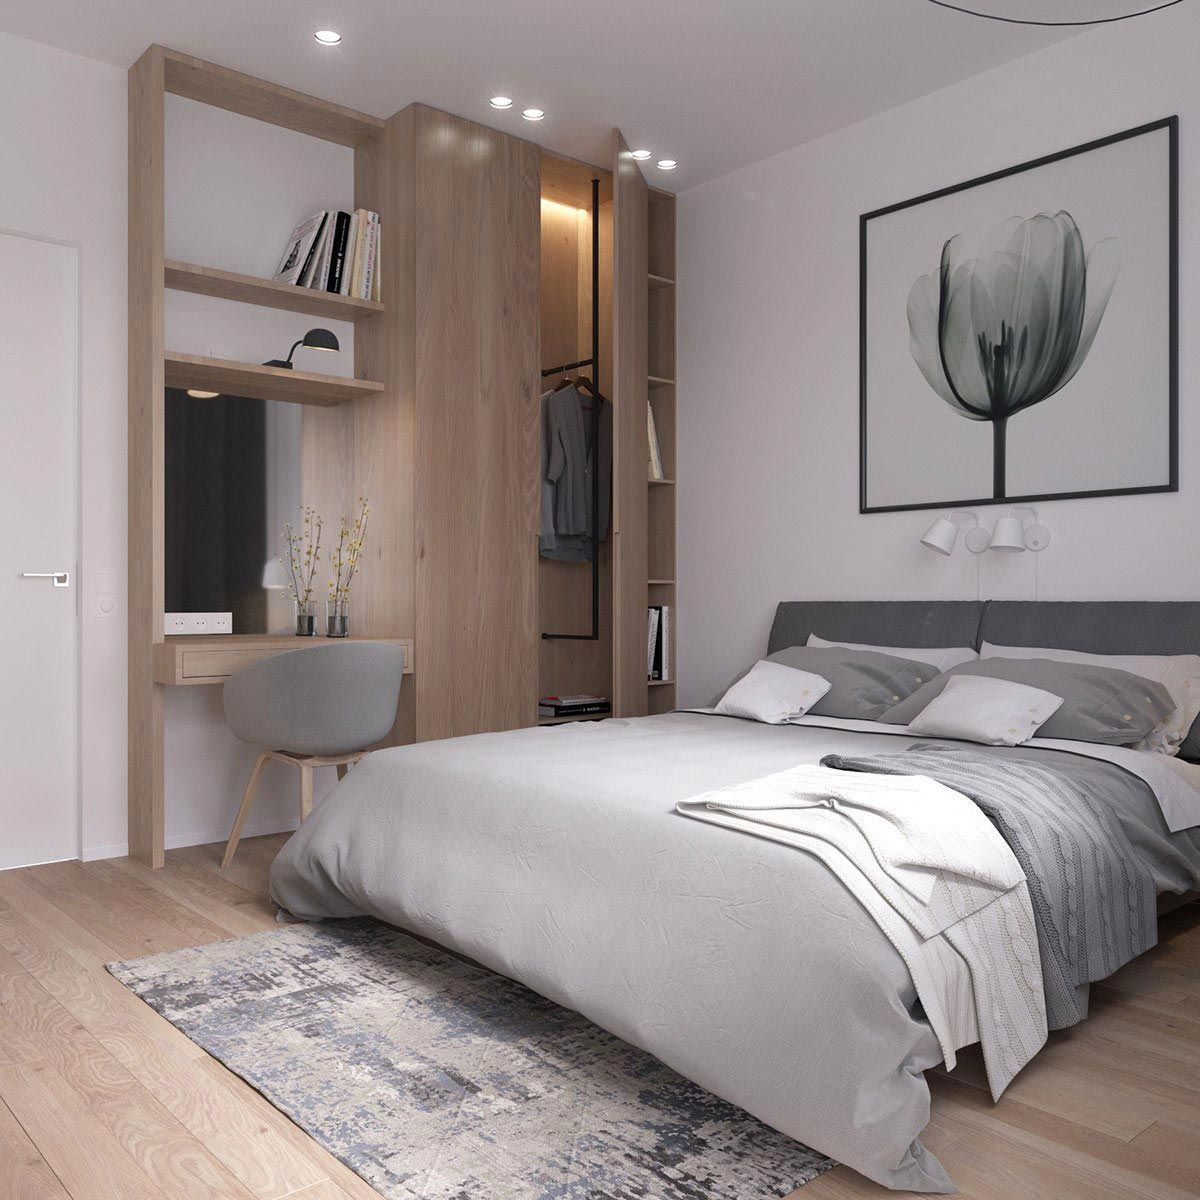 Pin On Bedrooms And Hotels